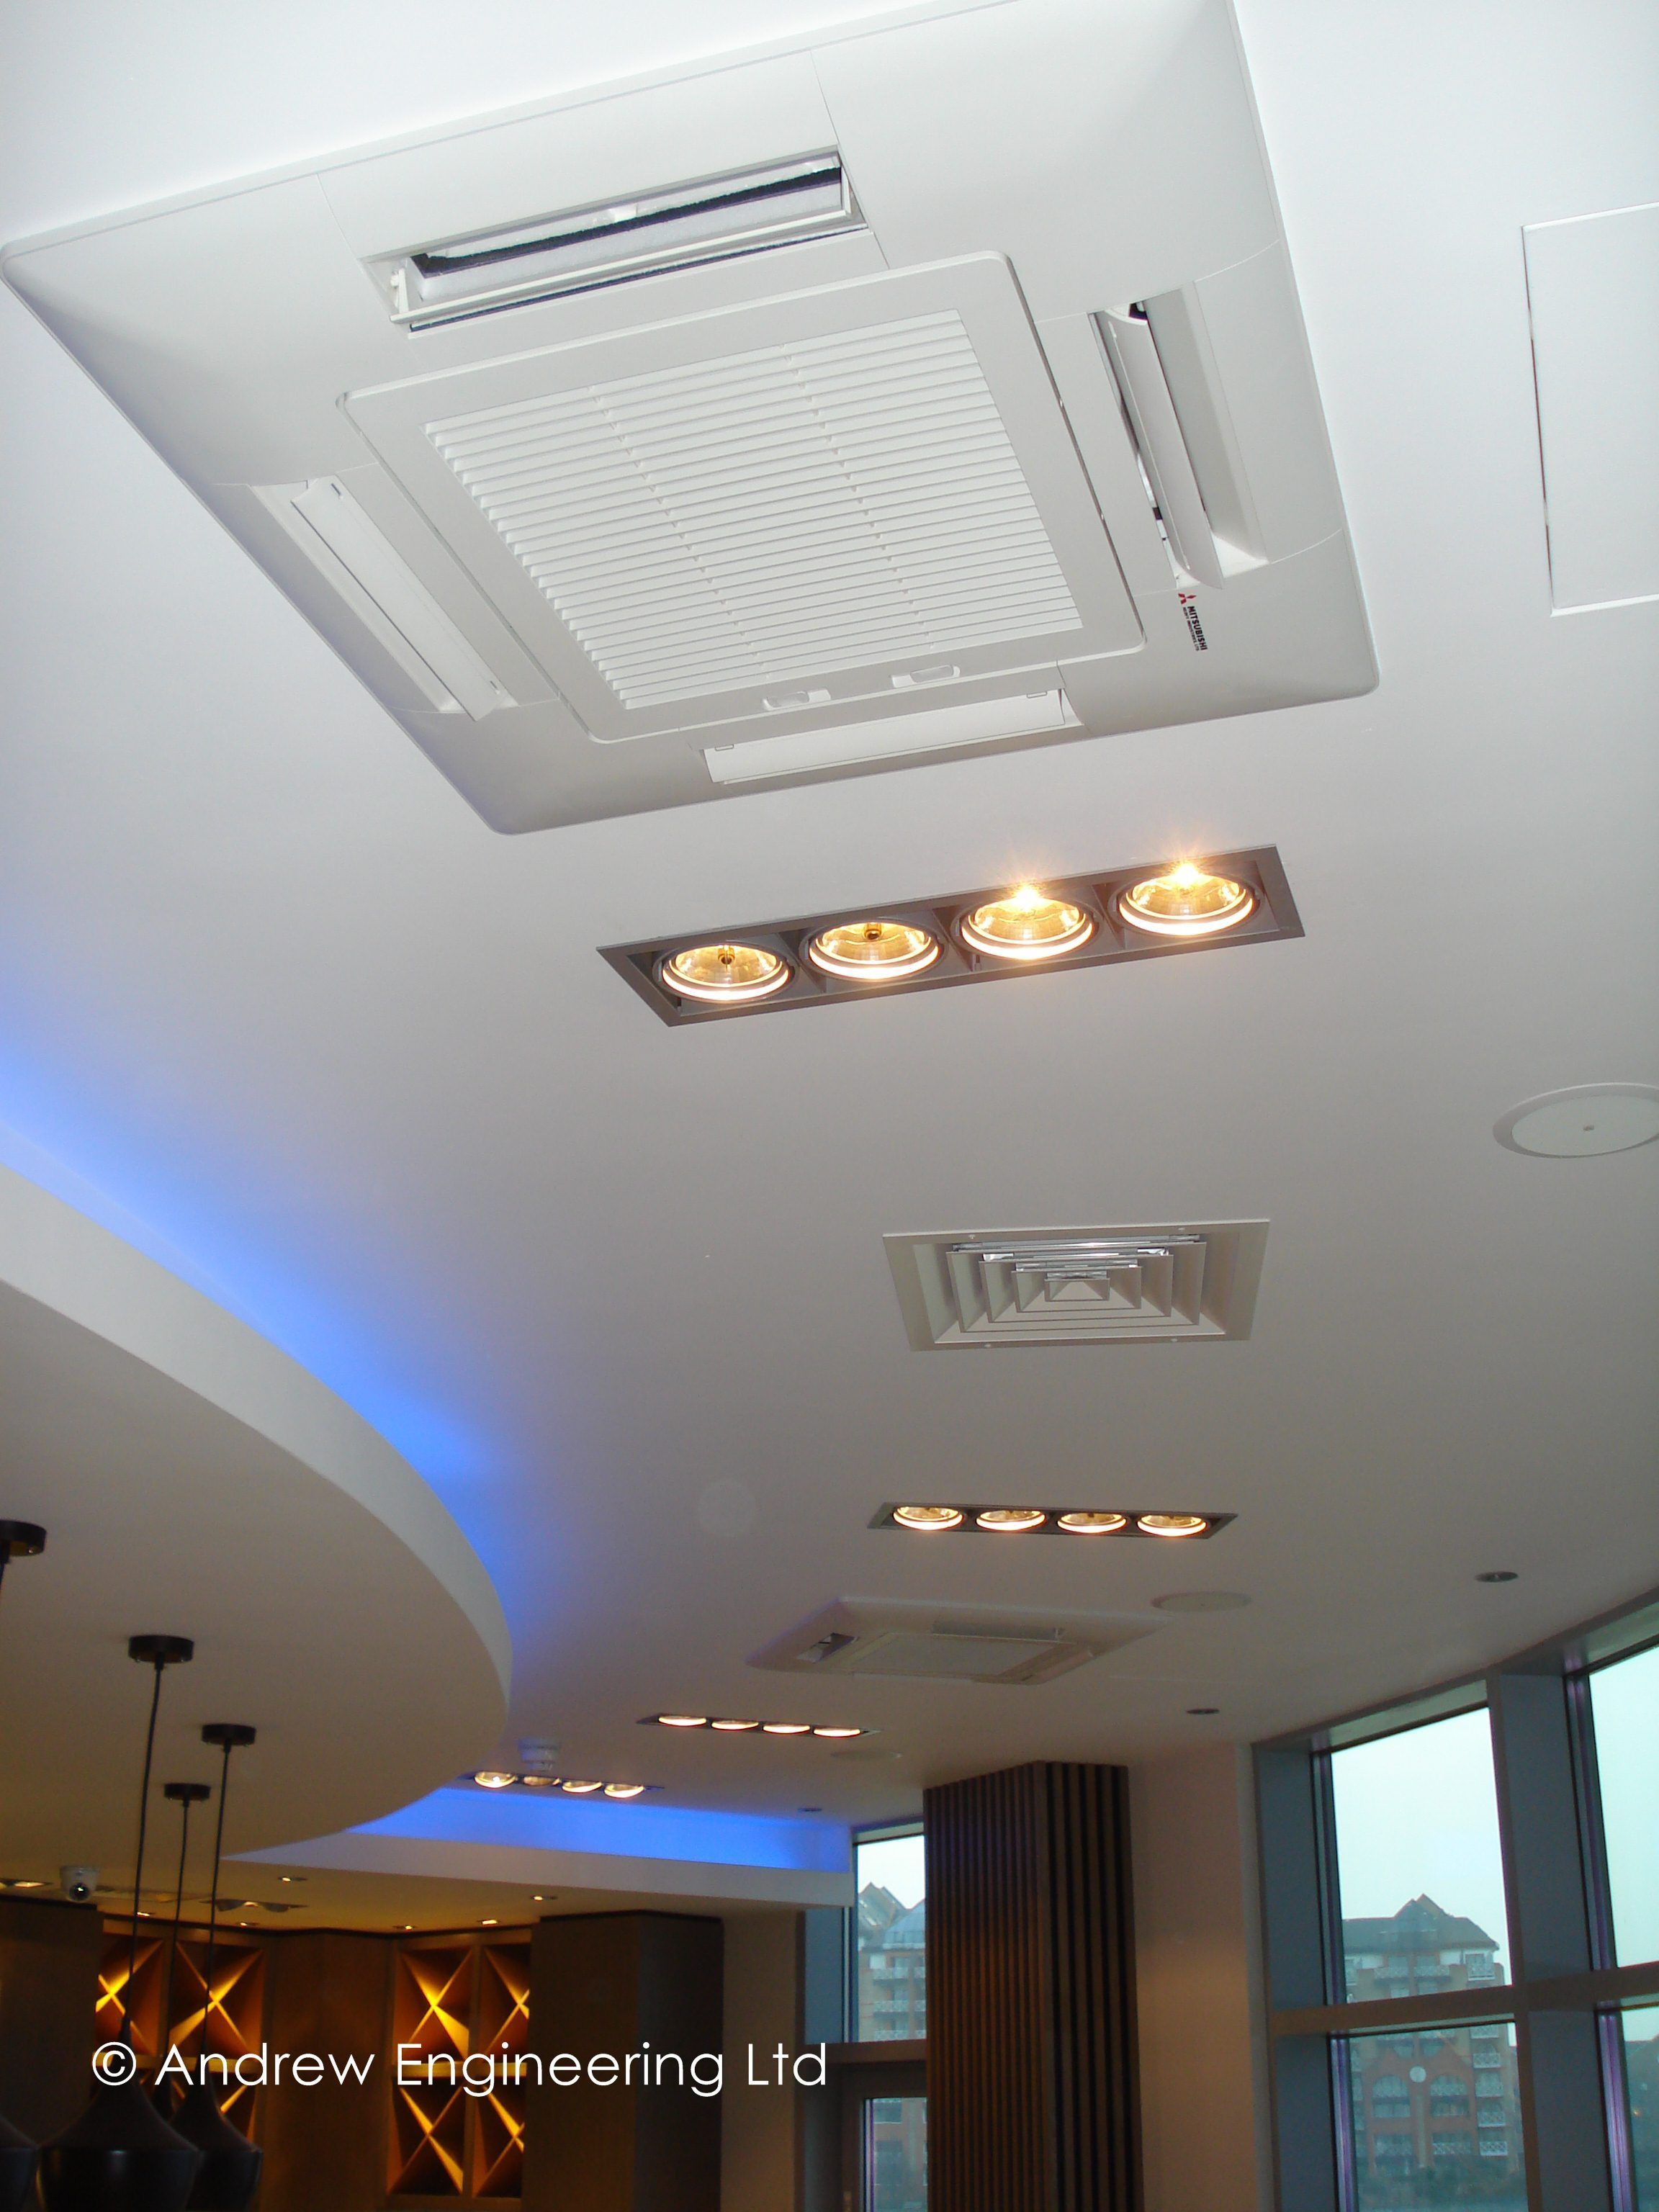 Ceiling Cassette Air Conditioning Air Conditioning